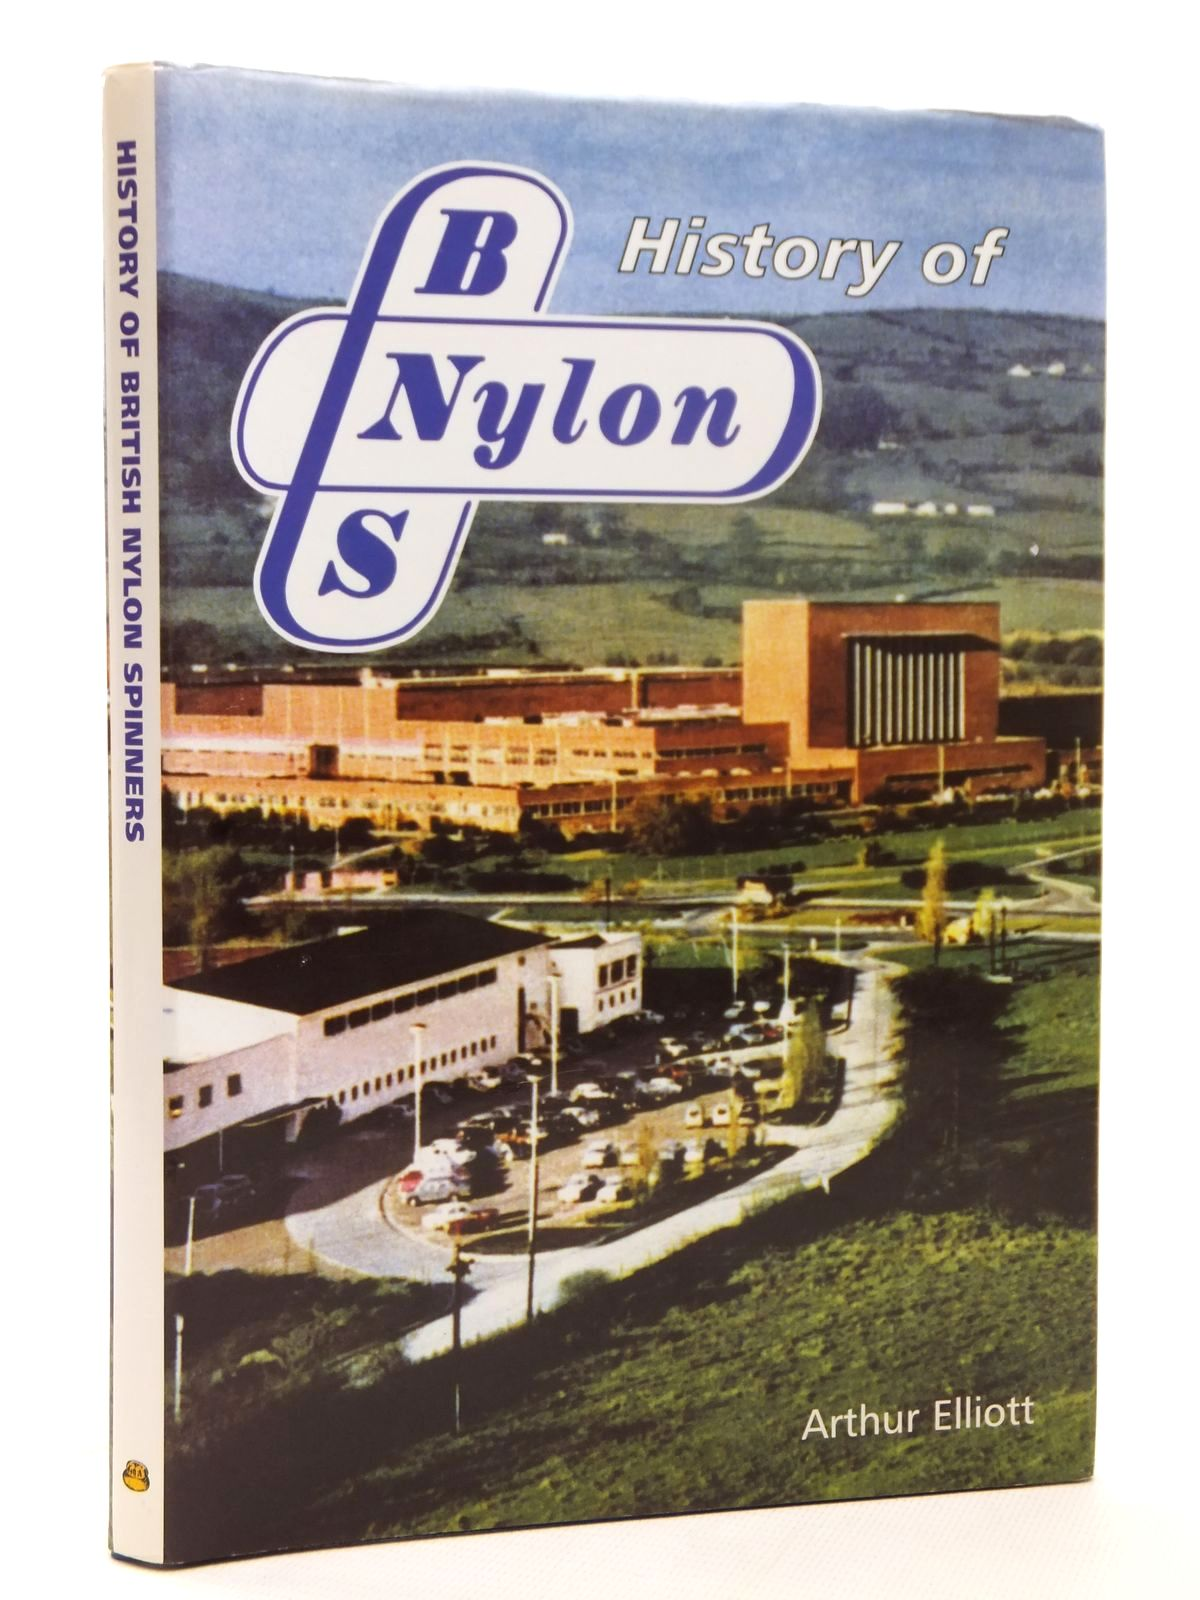 Photo of HISTORY OF BNS BRITISH NYLON SPINNERS written by Elliott, Arthur published by Old Bakehouse Publications (STOCK CODE: 1609254)  for sale by Stella & Rose's Books